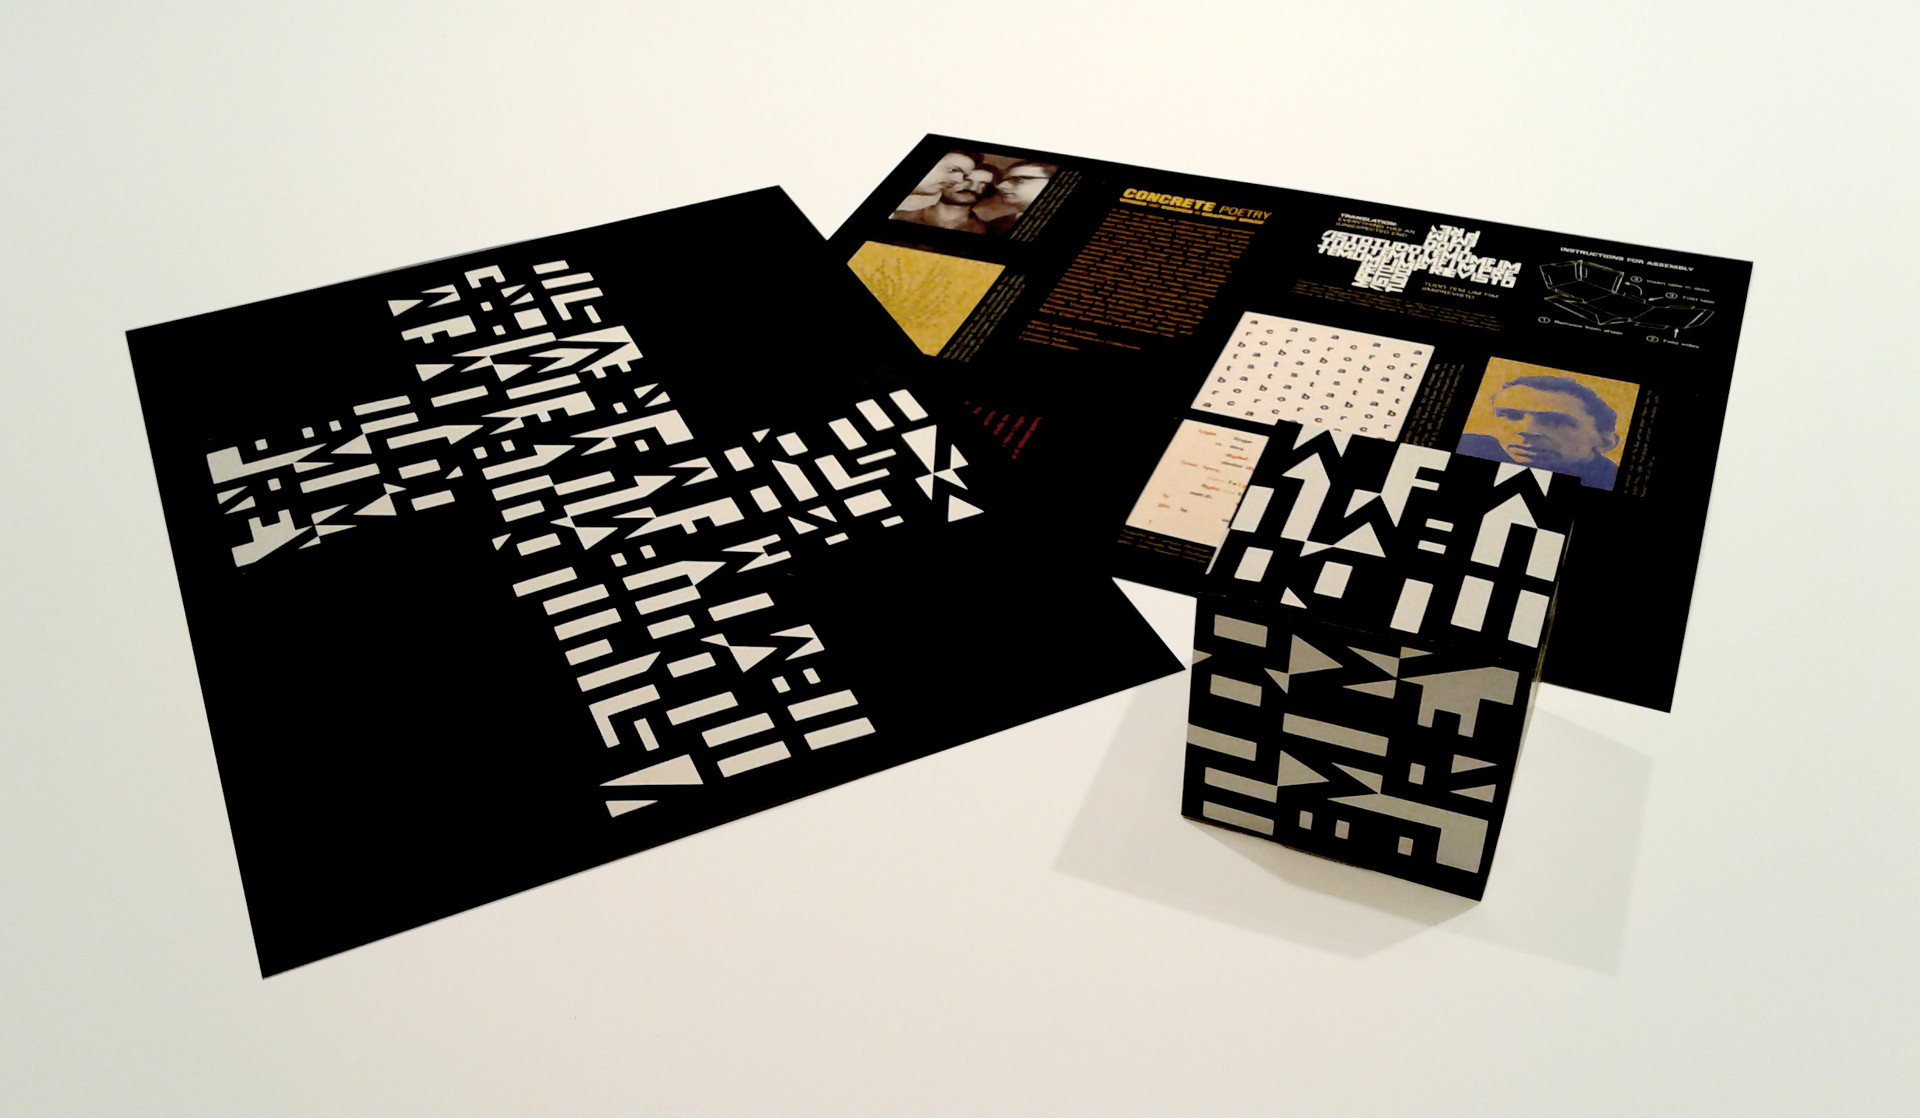 Exhibition brochure was able to be assembled into one of the artworks on view.